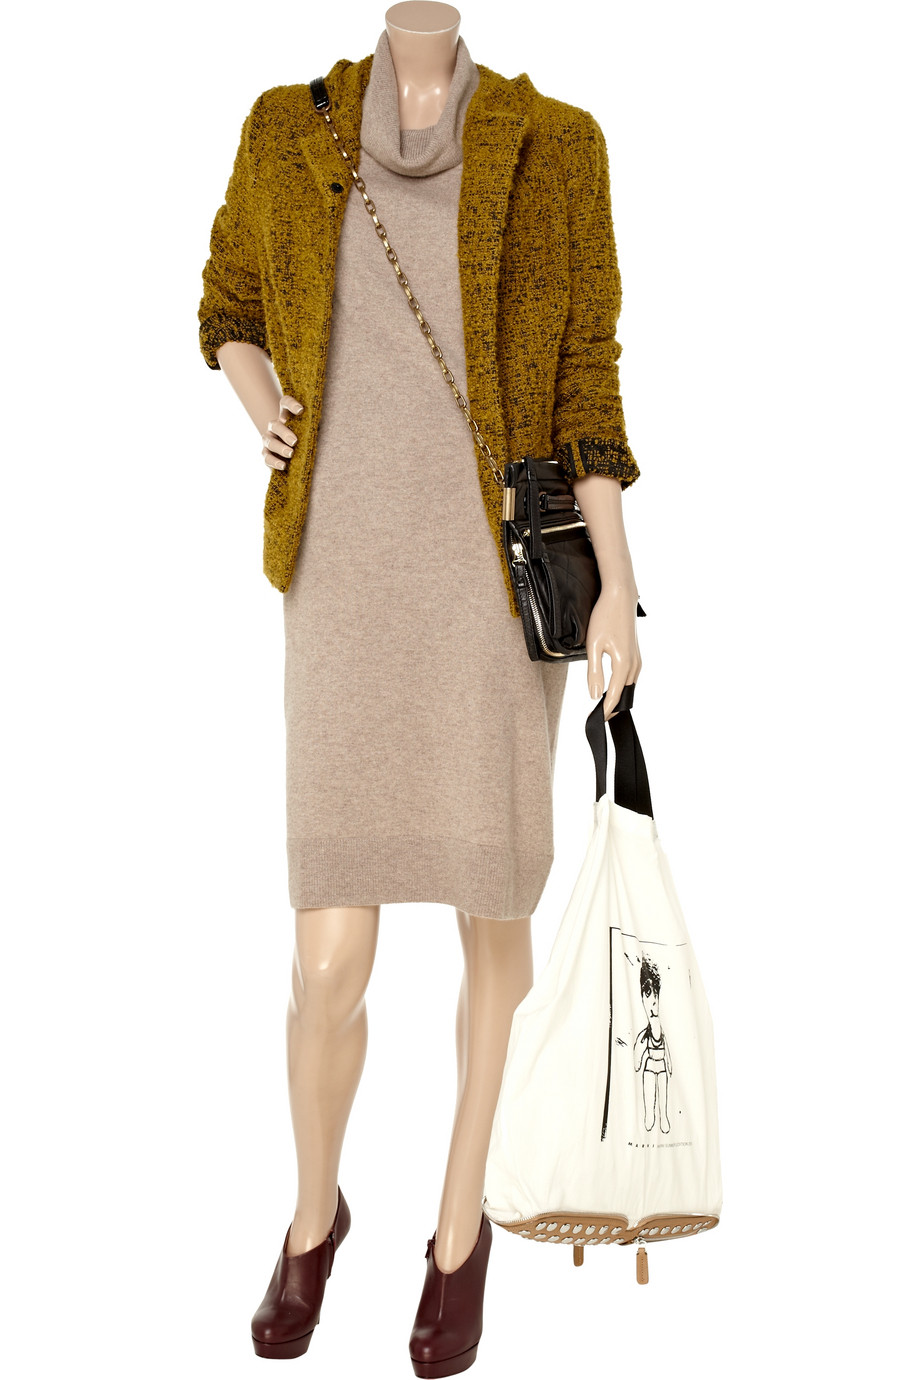 N Peal Cashmere Turtleneck Cashmere Sweater Dress In Brown